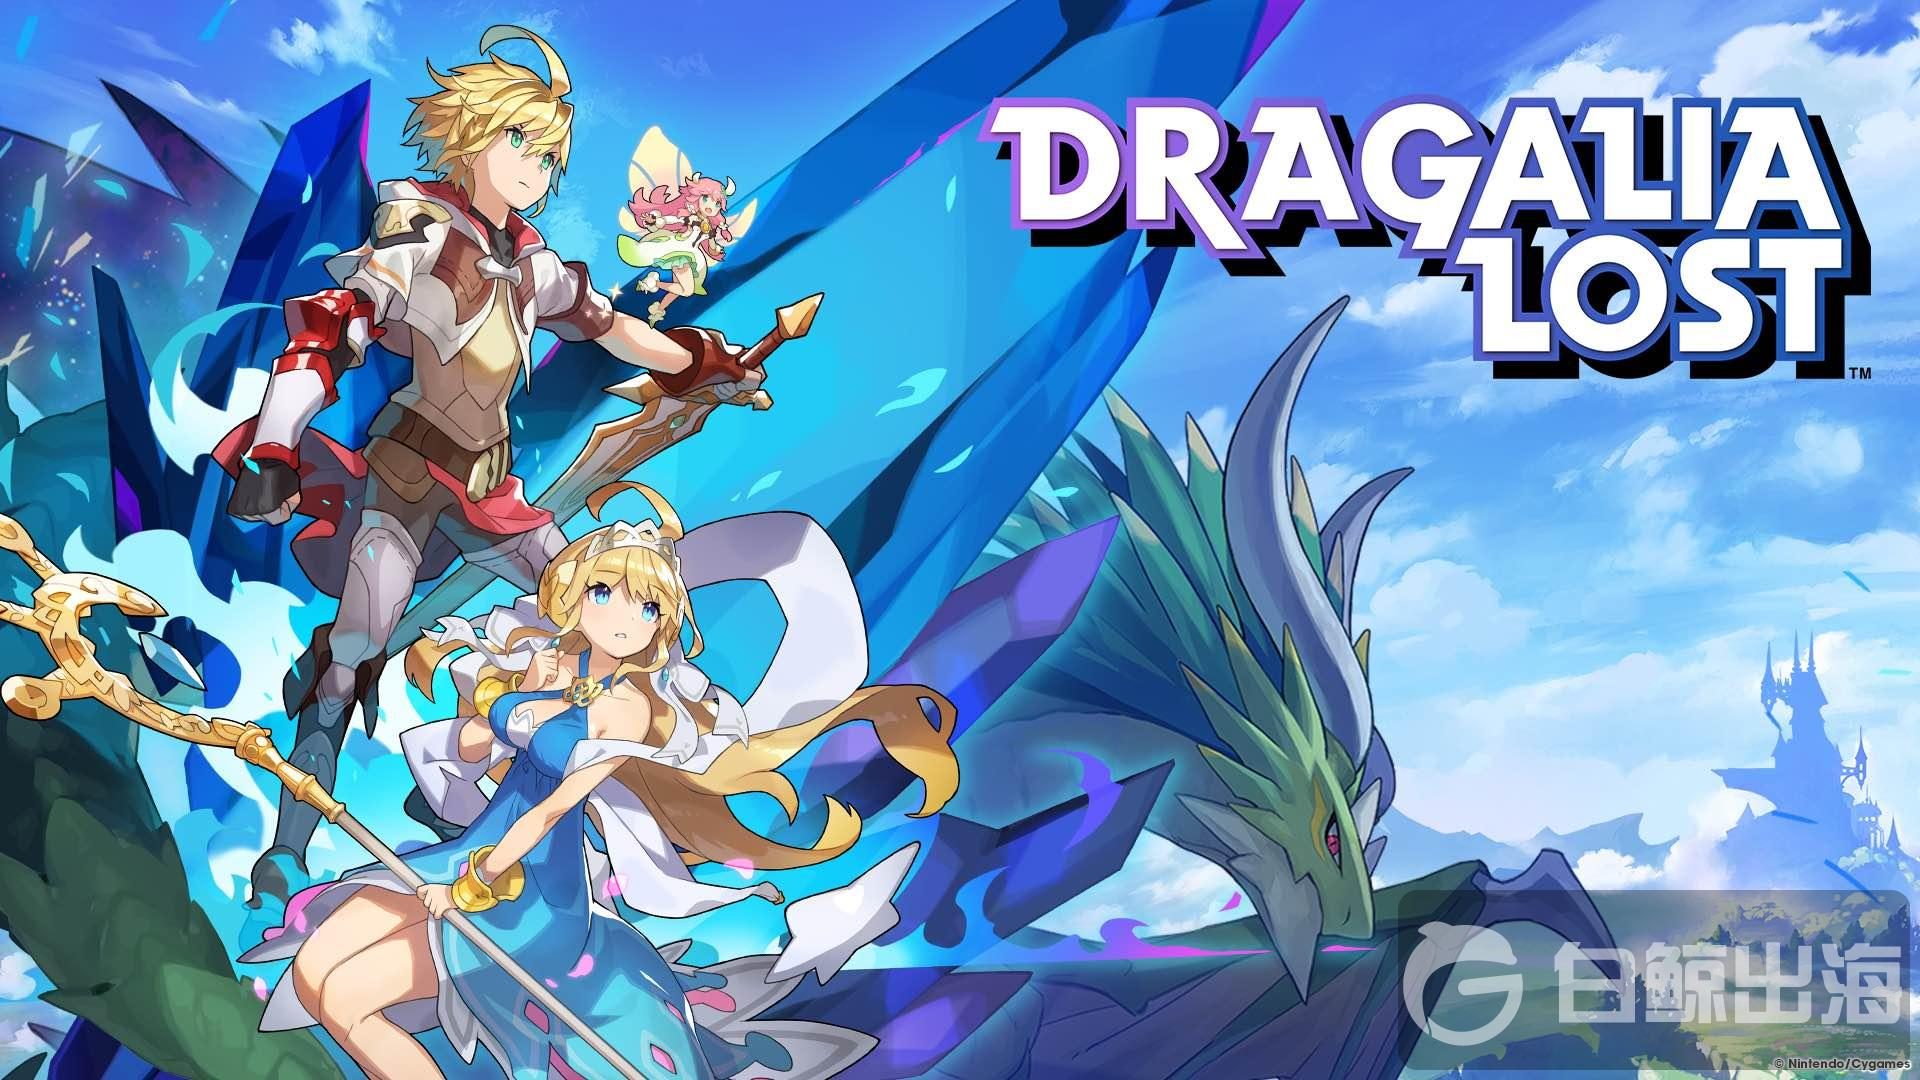 Dragalia-Lost-wallpaper.jpg